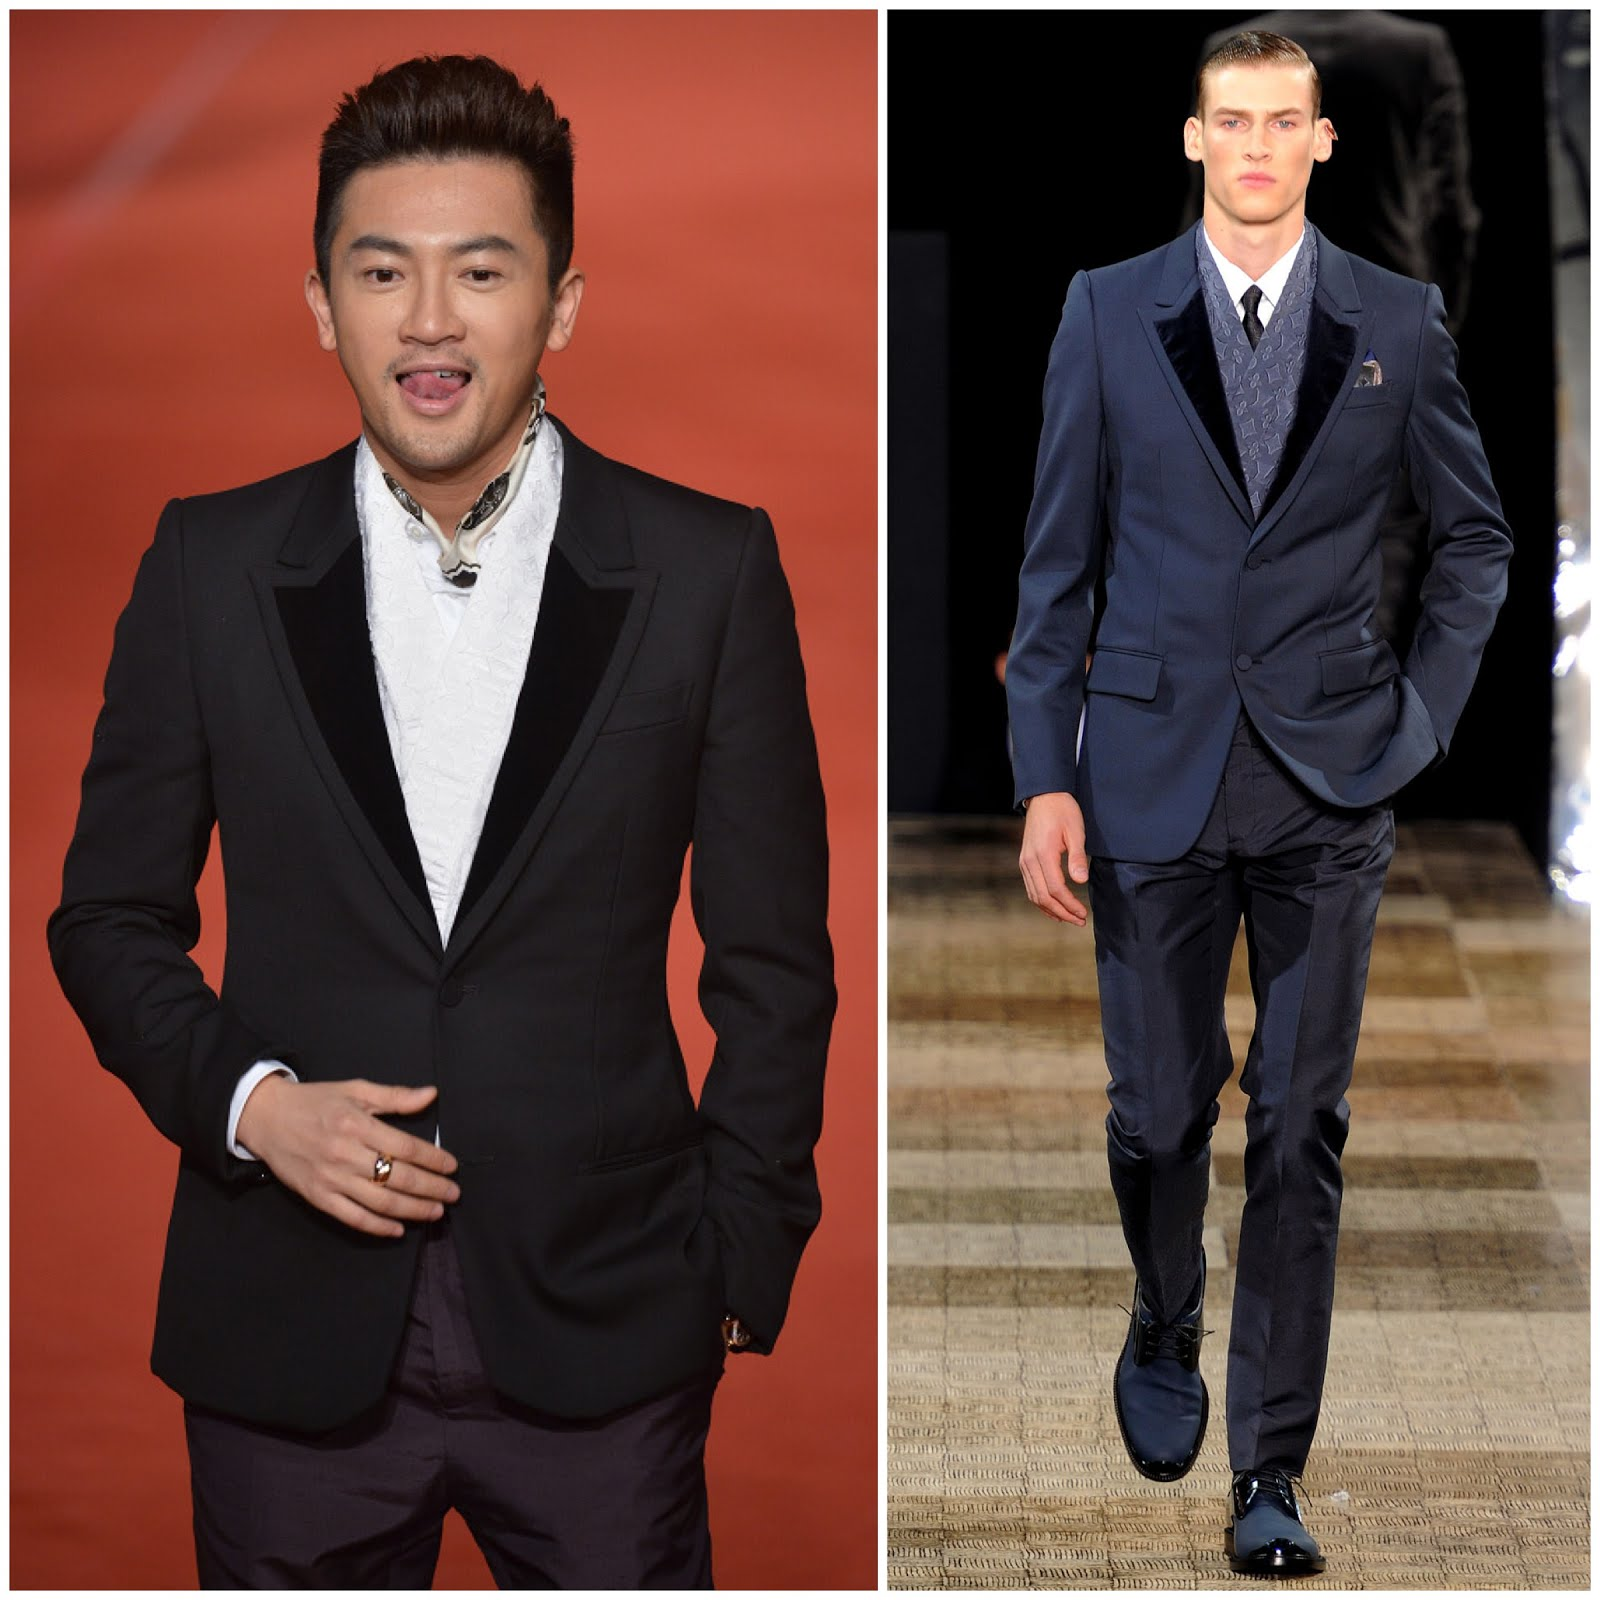 00O00 London Menswear Blog Celebrity Style Alec Su Youpeng in Louis Vuitton - 49th Golden Horse Awards [苏有朋盛装出席第49届台湾电影金马奖颁奖礼, 身穿路易威登晚礼服]